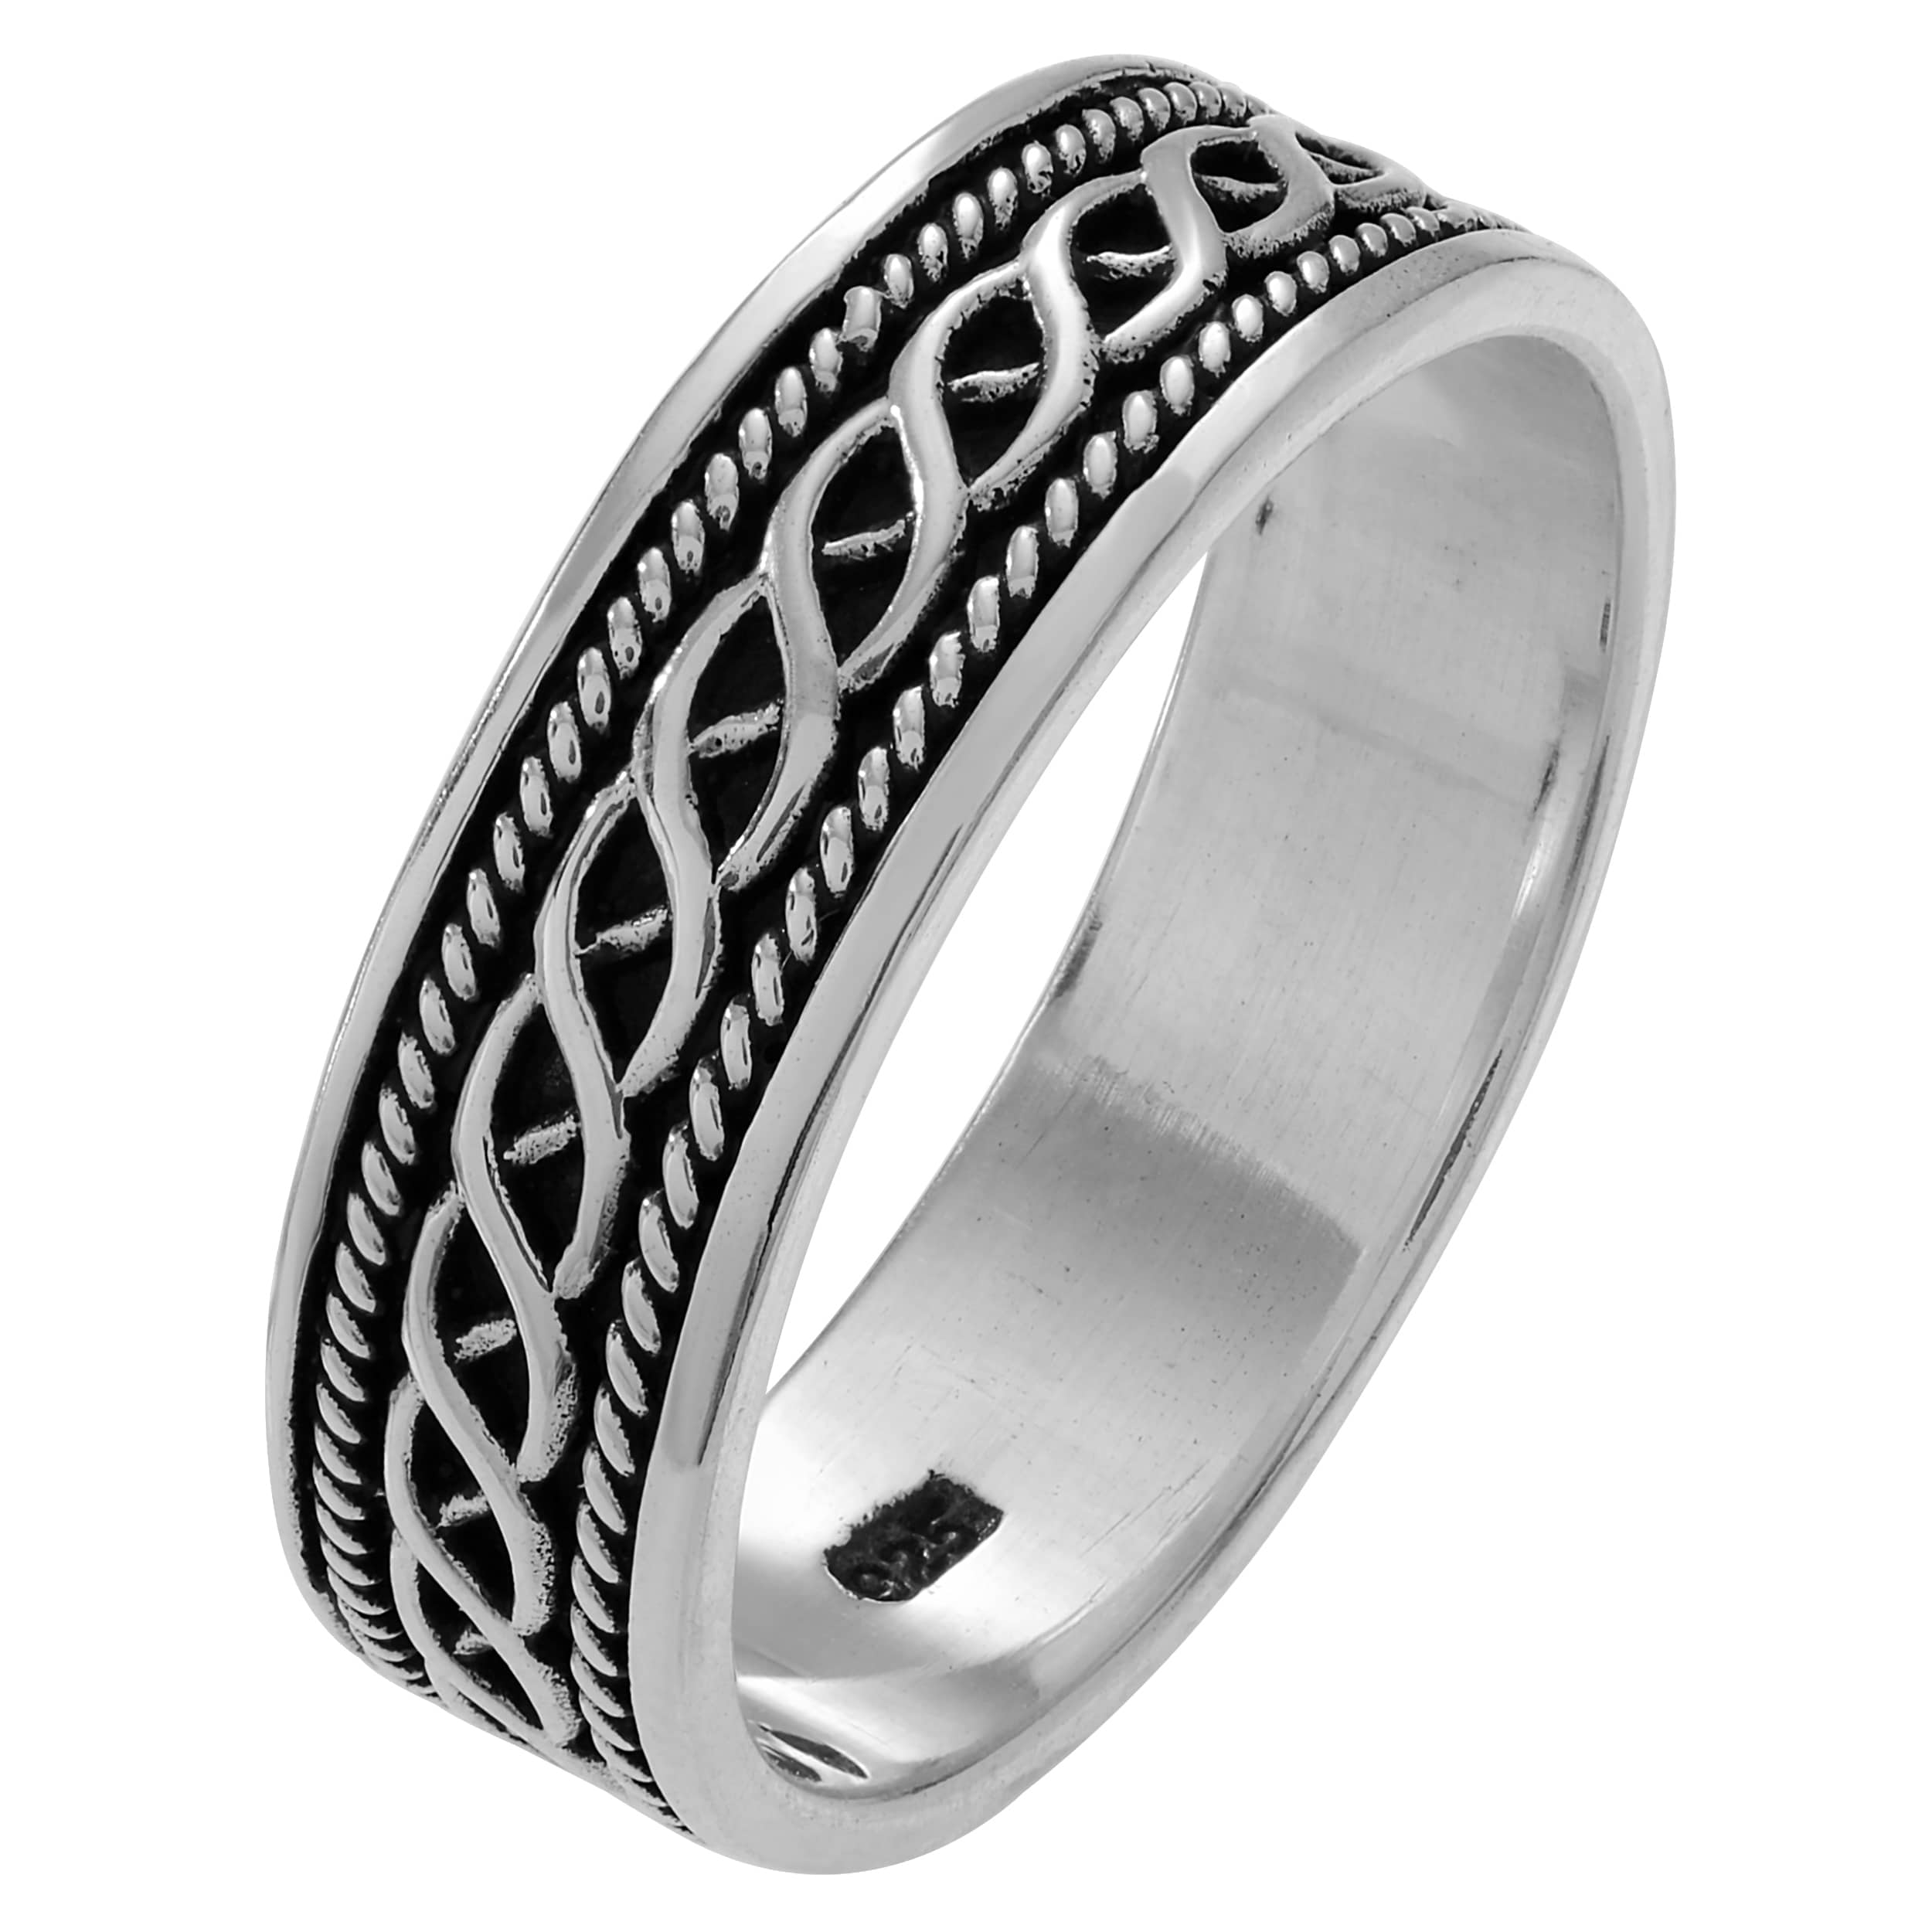 valeriosilver sterling fairtrade wedding infinity silver mens bands valeriojewelry band men ring court s comp